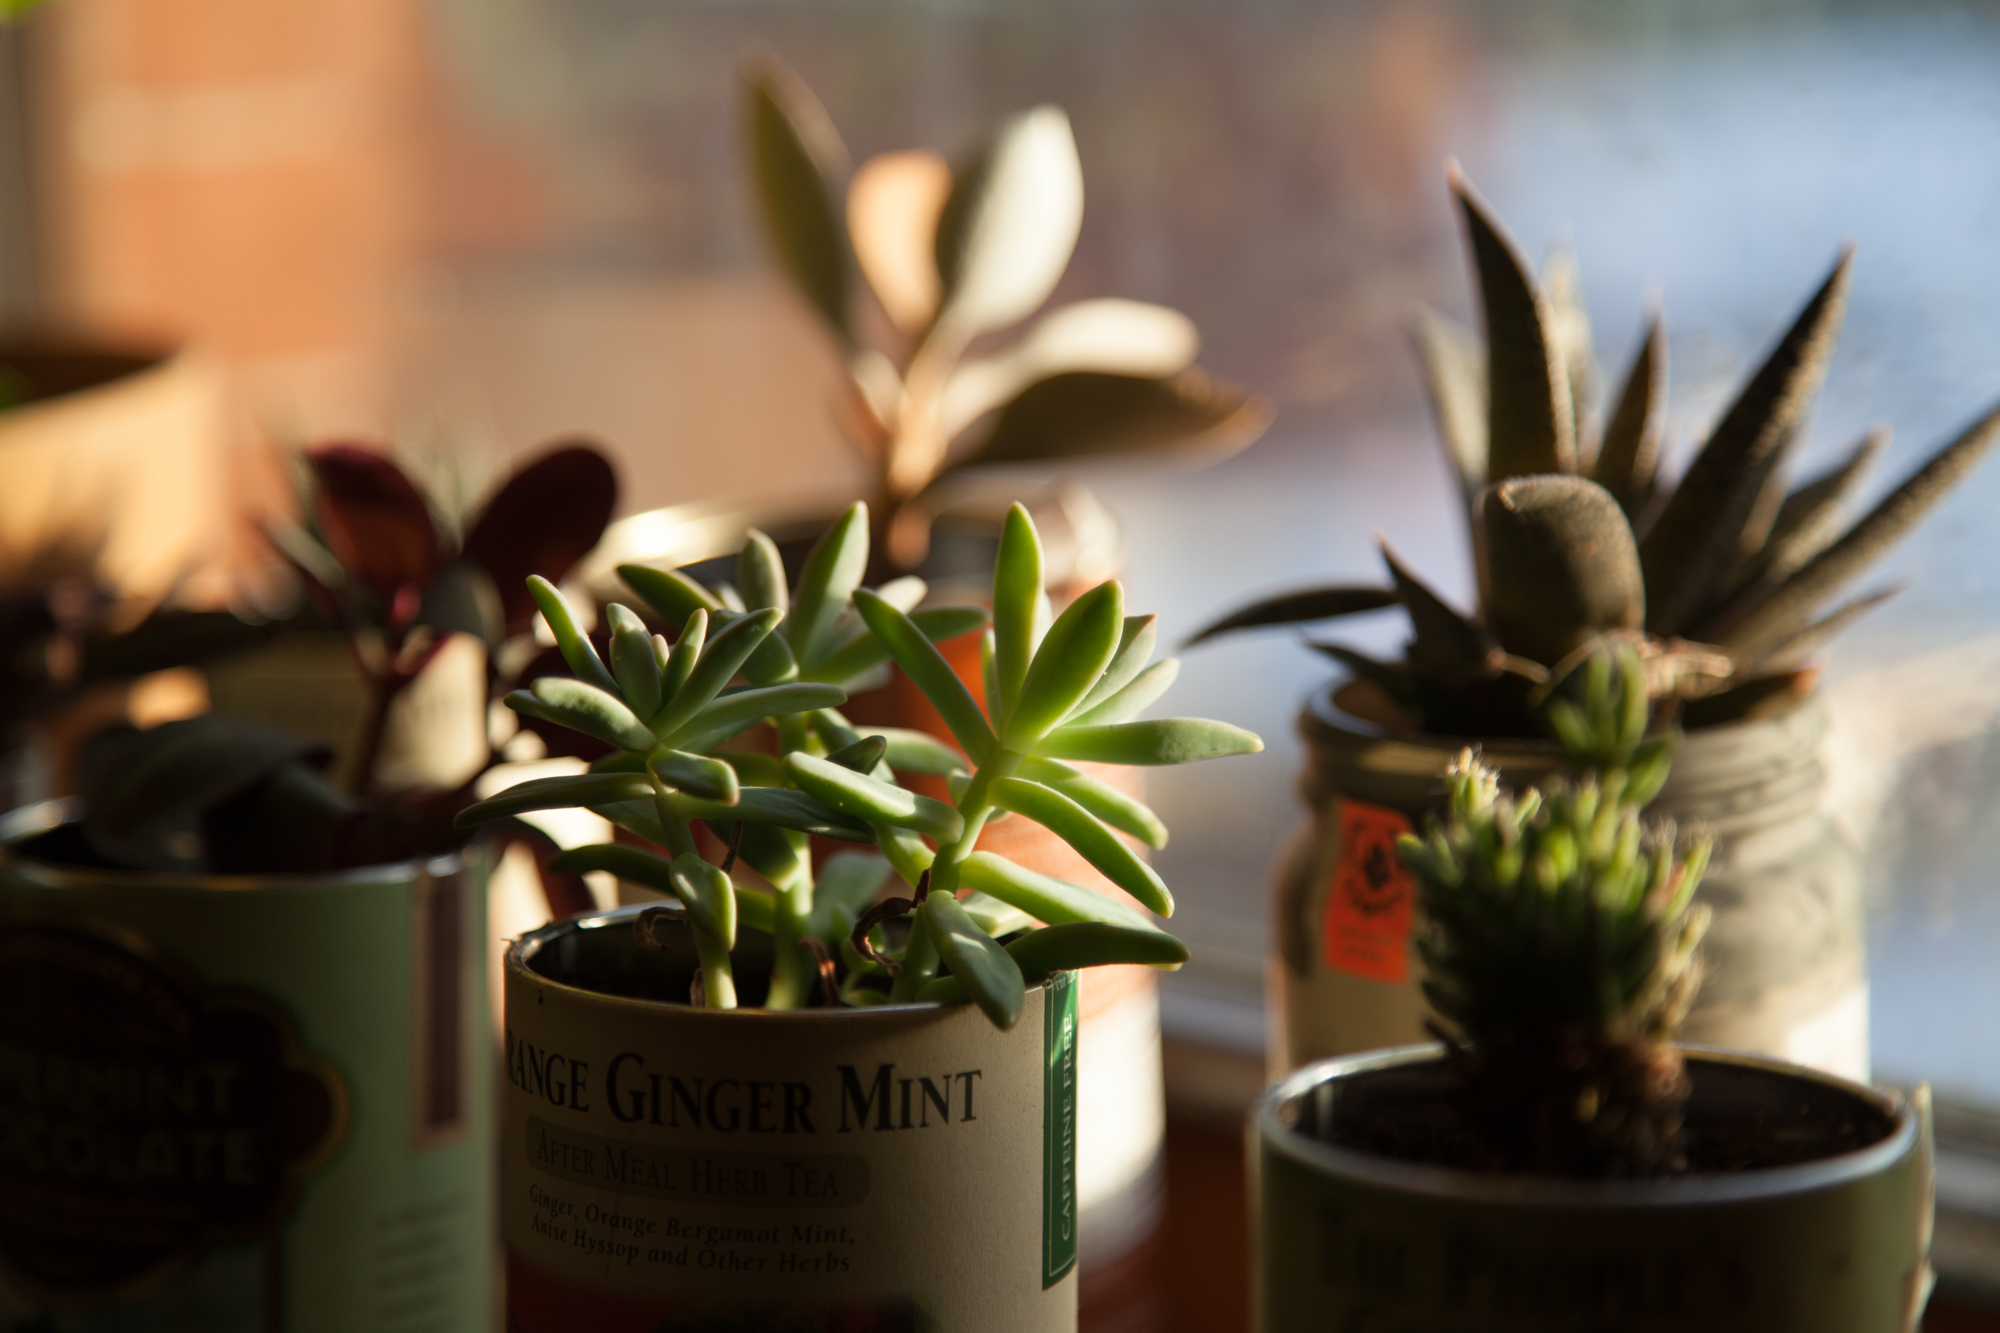 Upcycled tea canister garden with succulents.